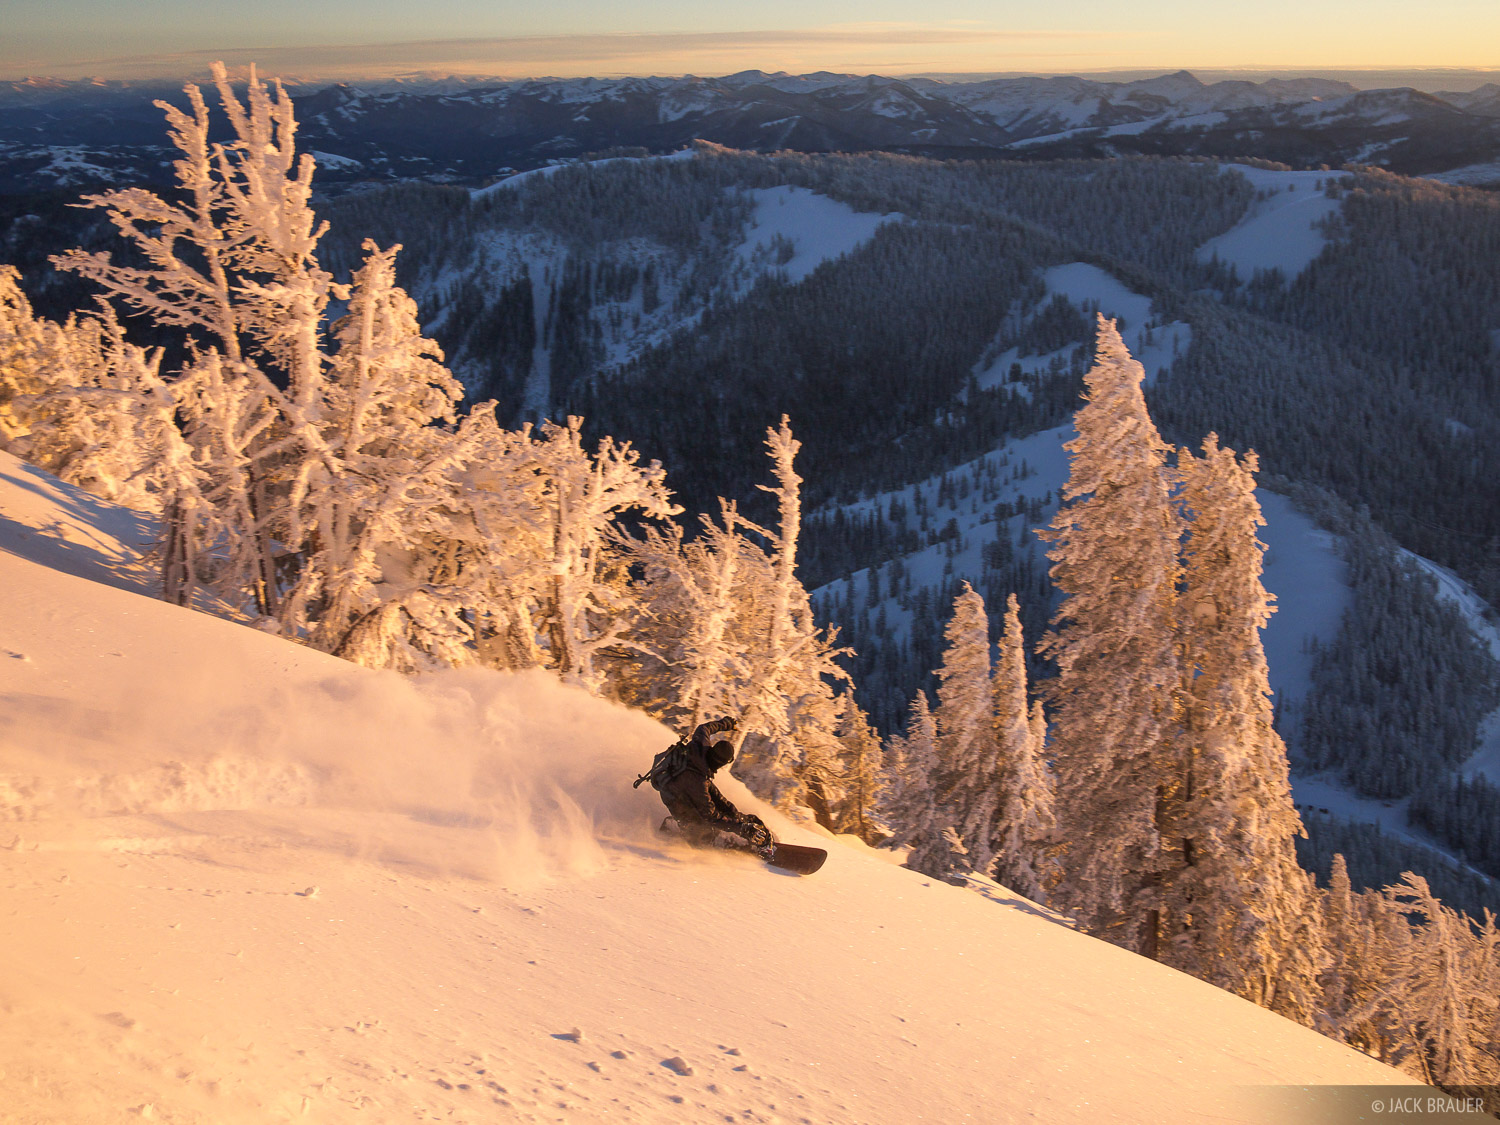 Jason King carves the powder on Teton Pass during beautiful sunset light - January.